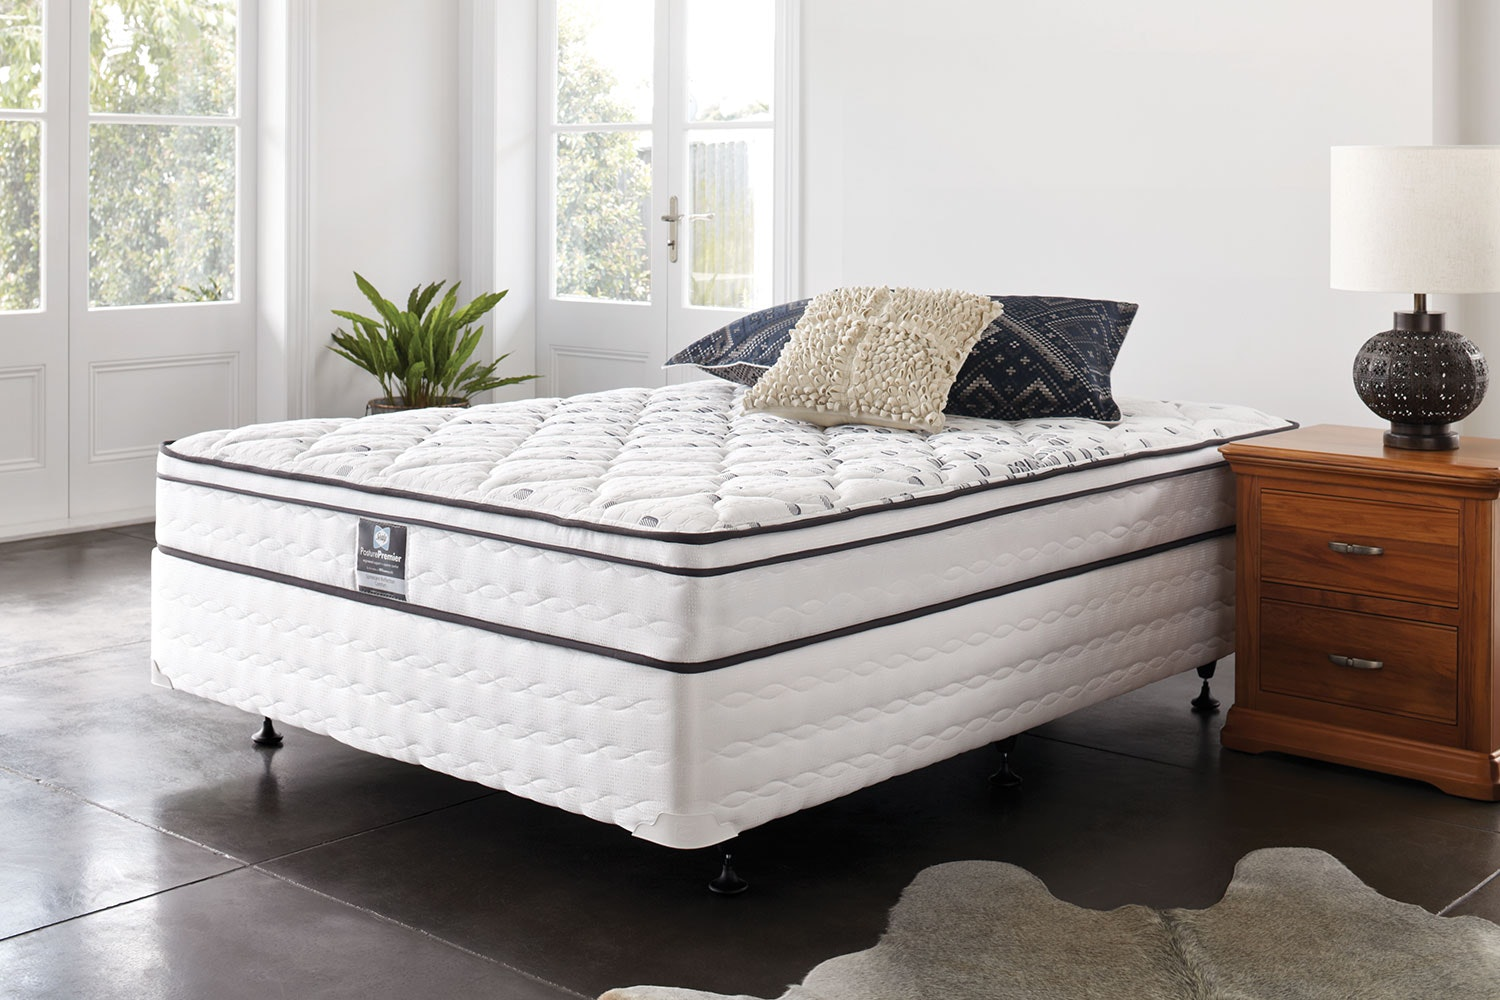 Spinecare Reflection Comfort Queen Bed by Sealy